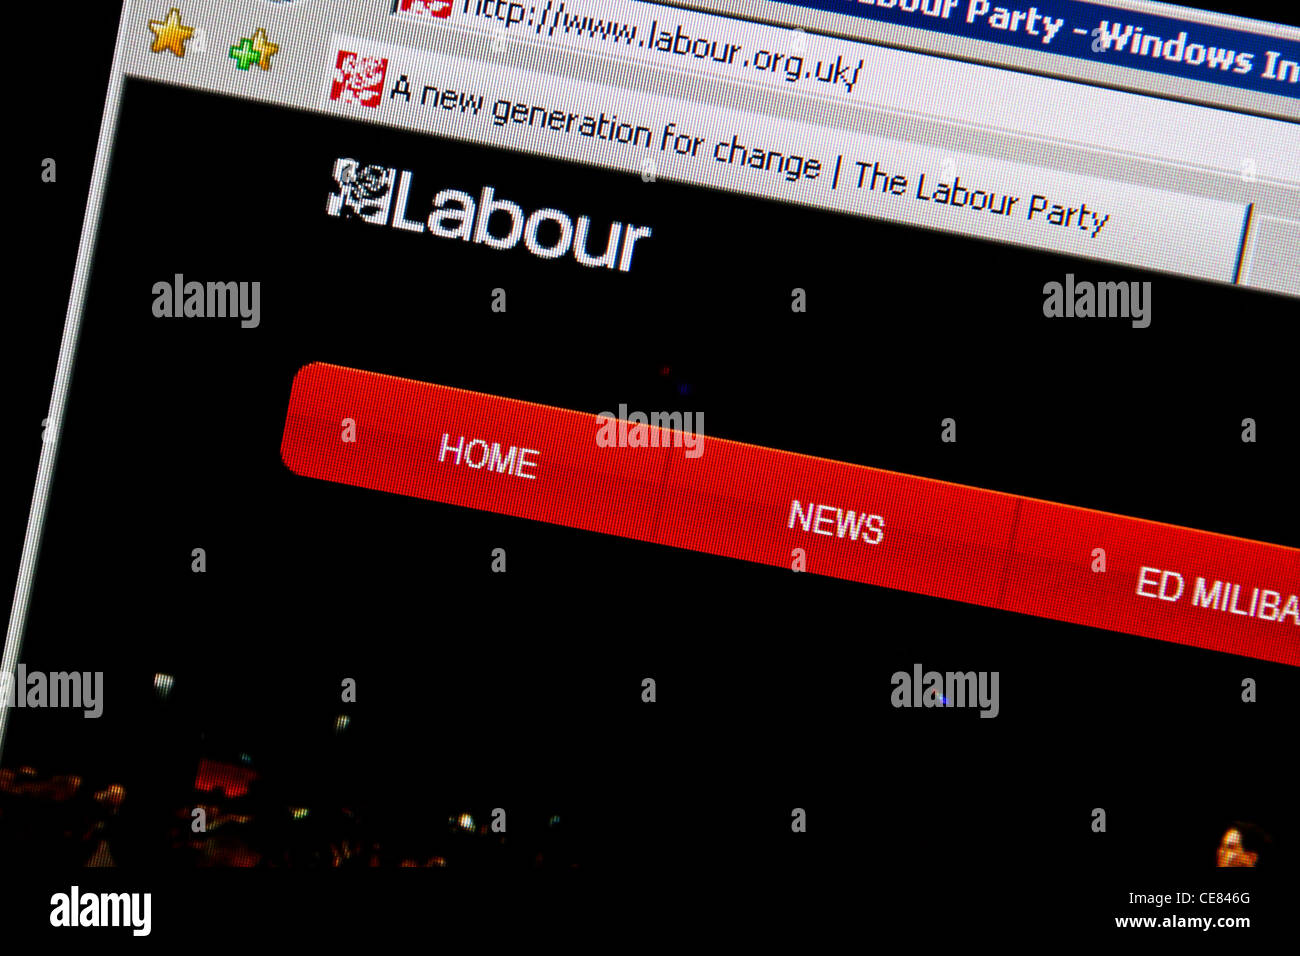 labour party website - Stock Image